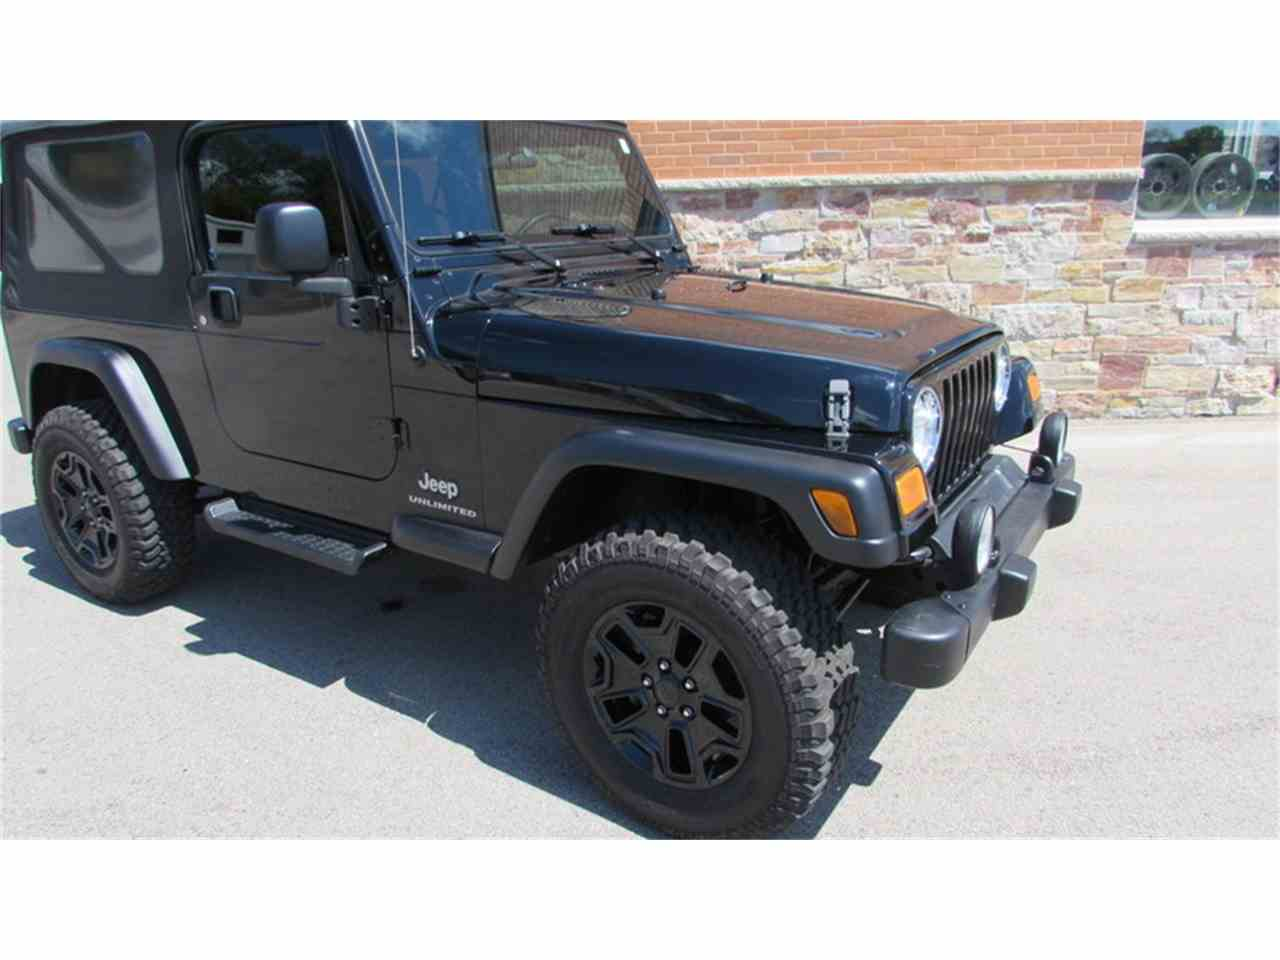 2005 Jeep Unlimited Lj For Sale - Photo 2